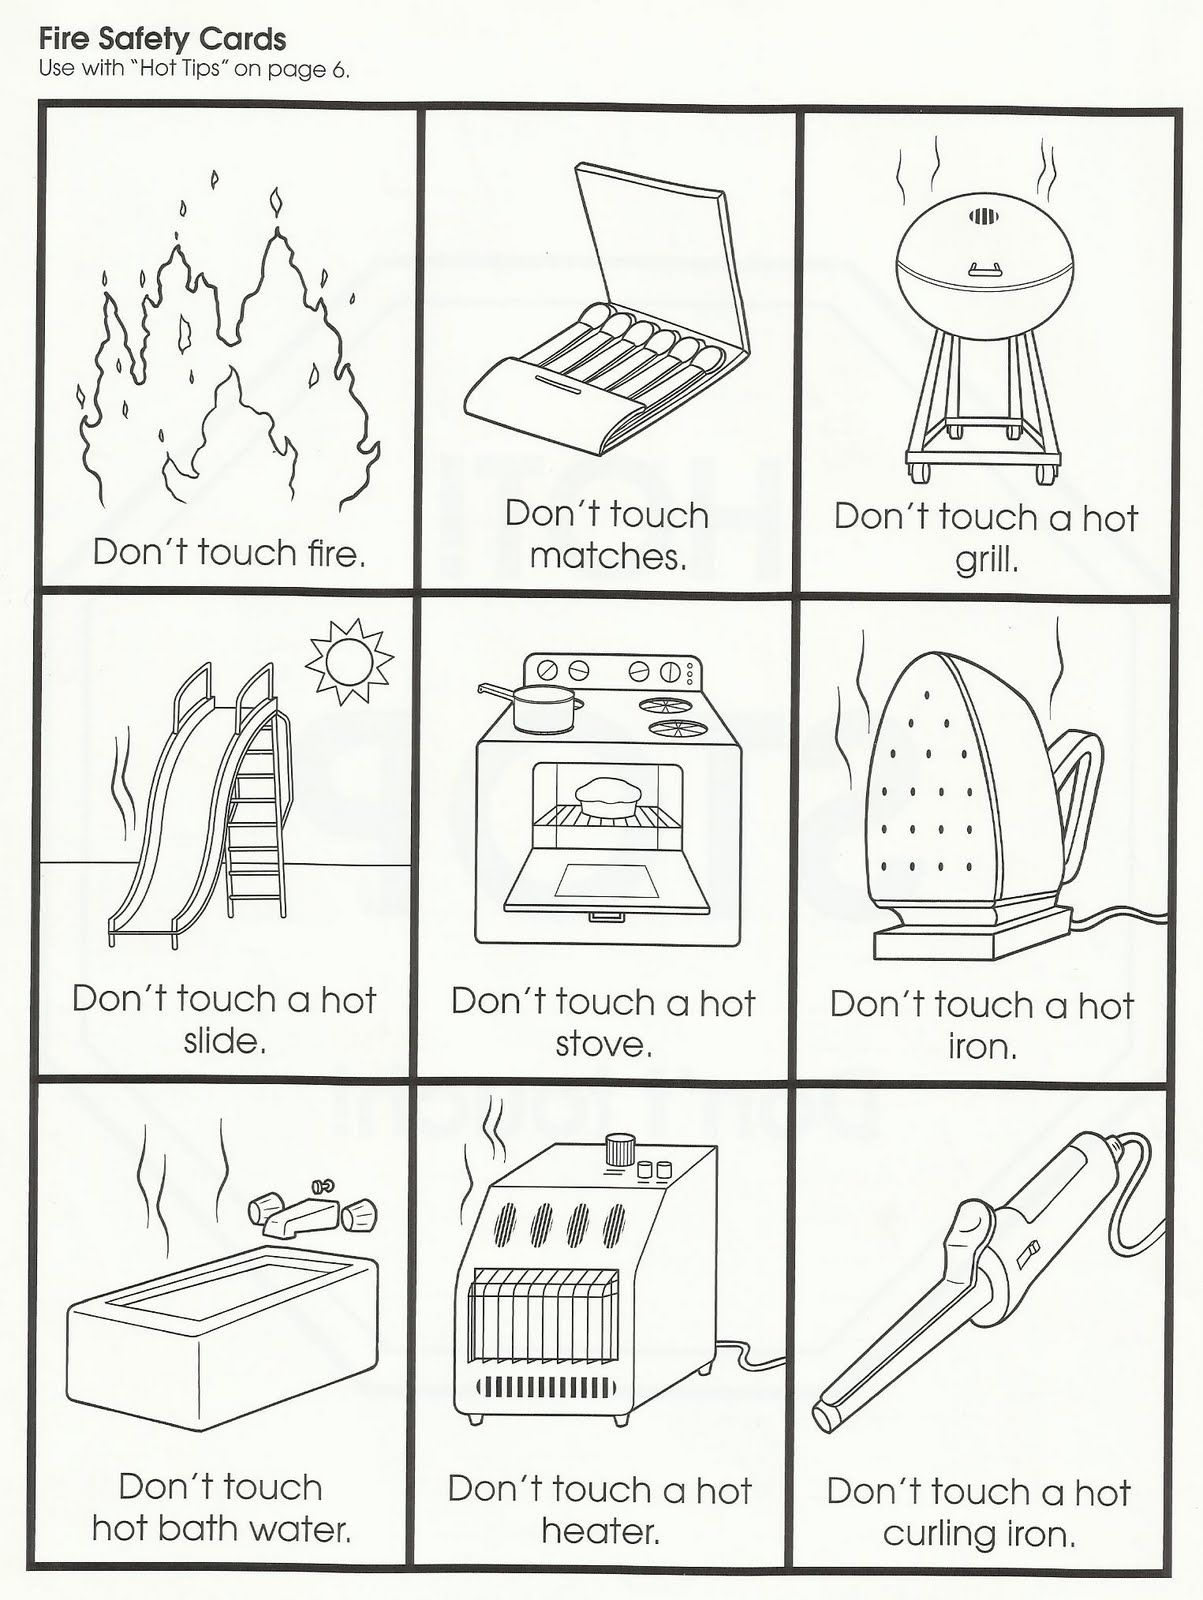 worksheet Community Helper Worksheets squish preschool ideas fire safety community helpers worksheets for kindergarten